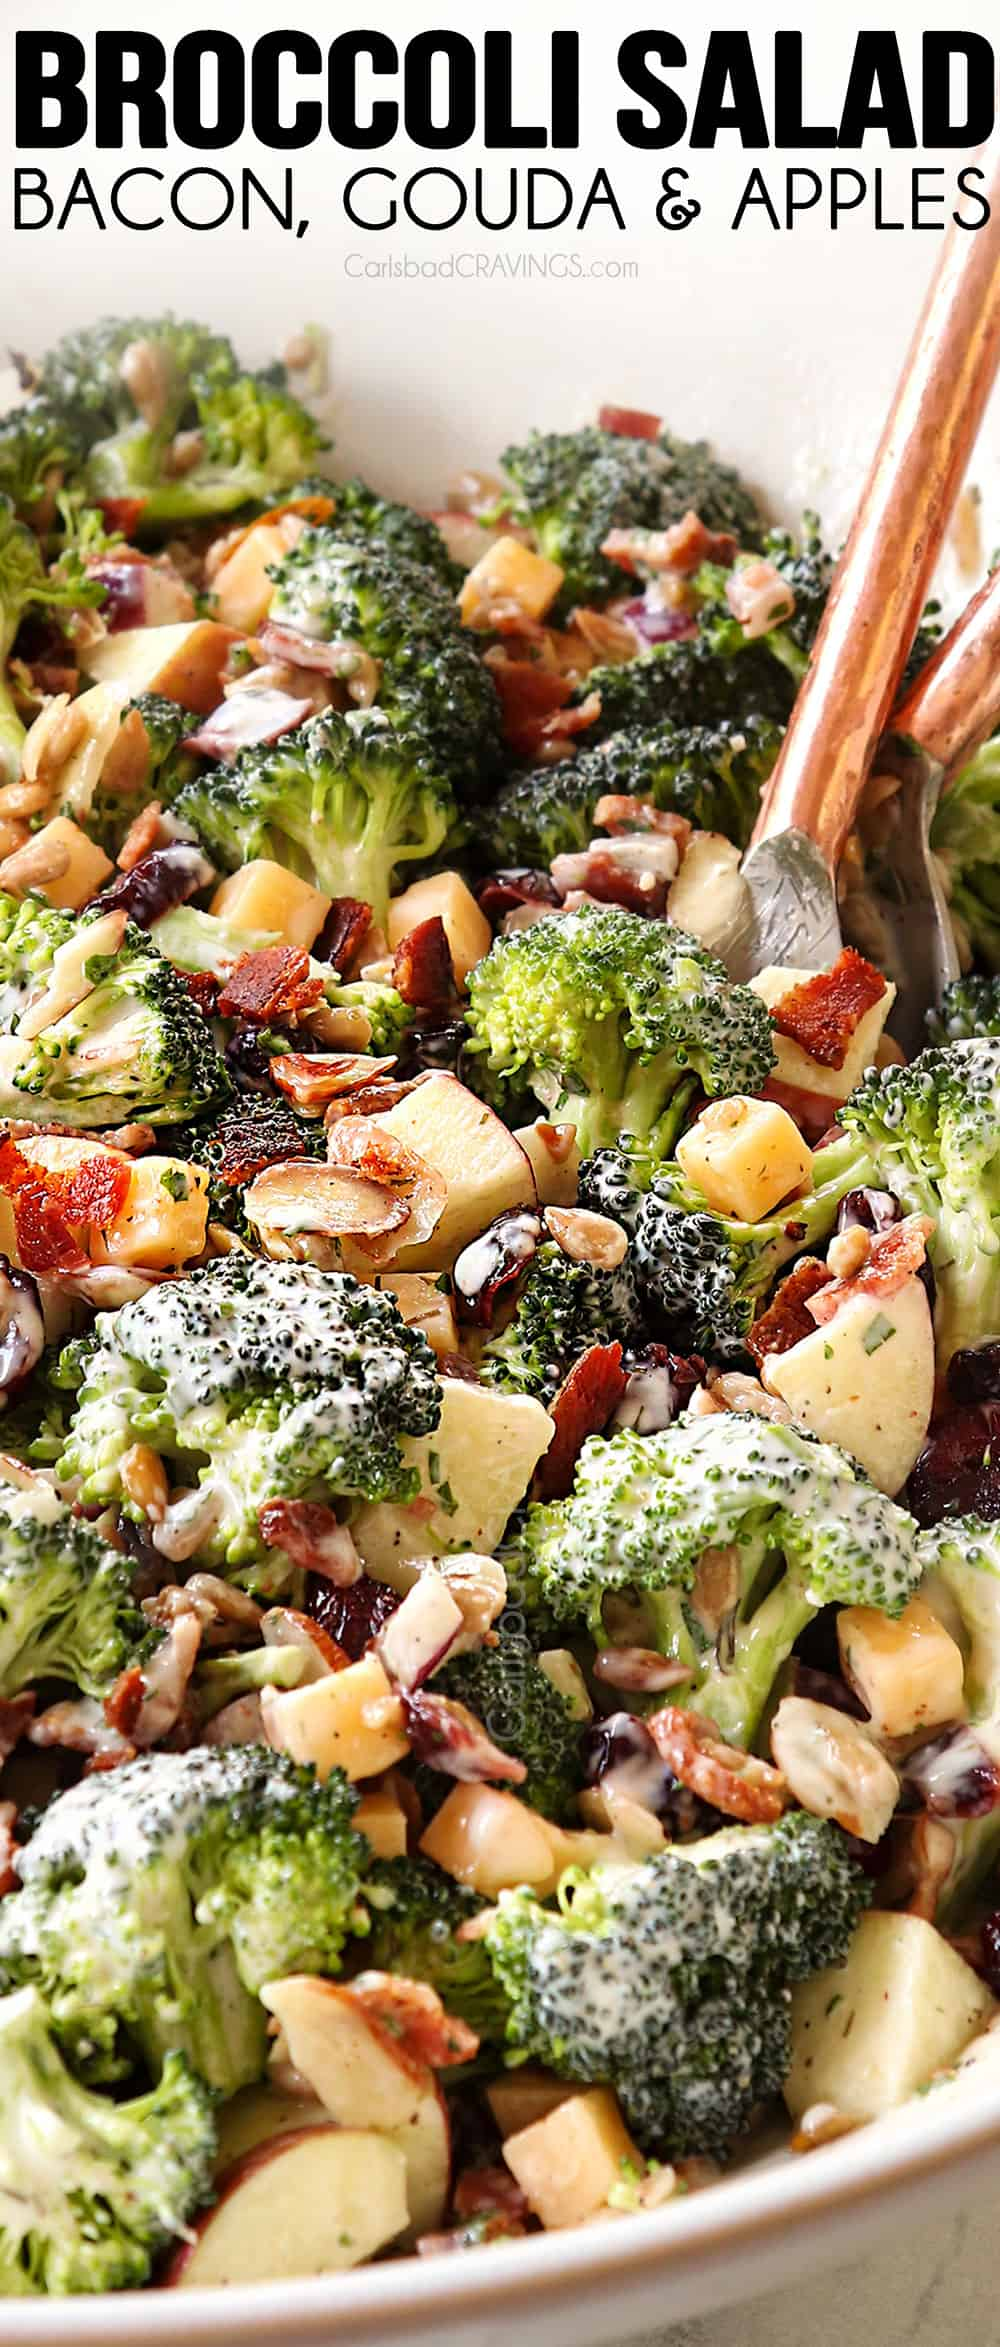 up close of scooping up broccoli baconn salad